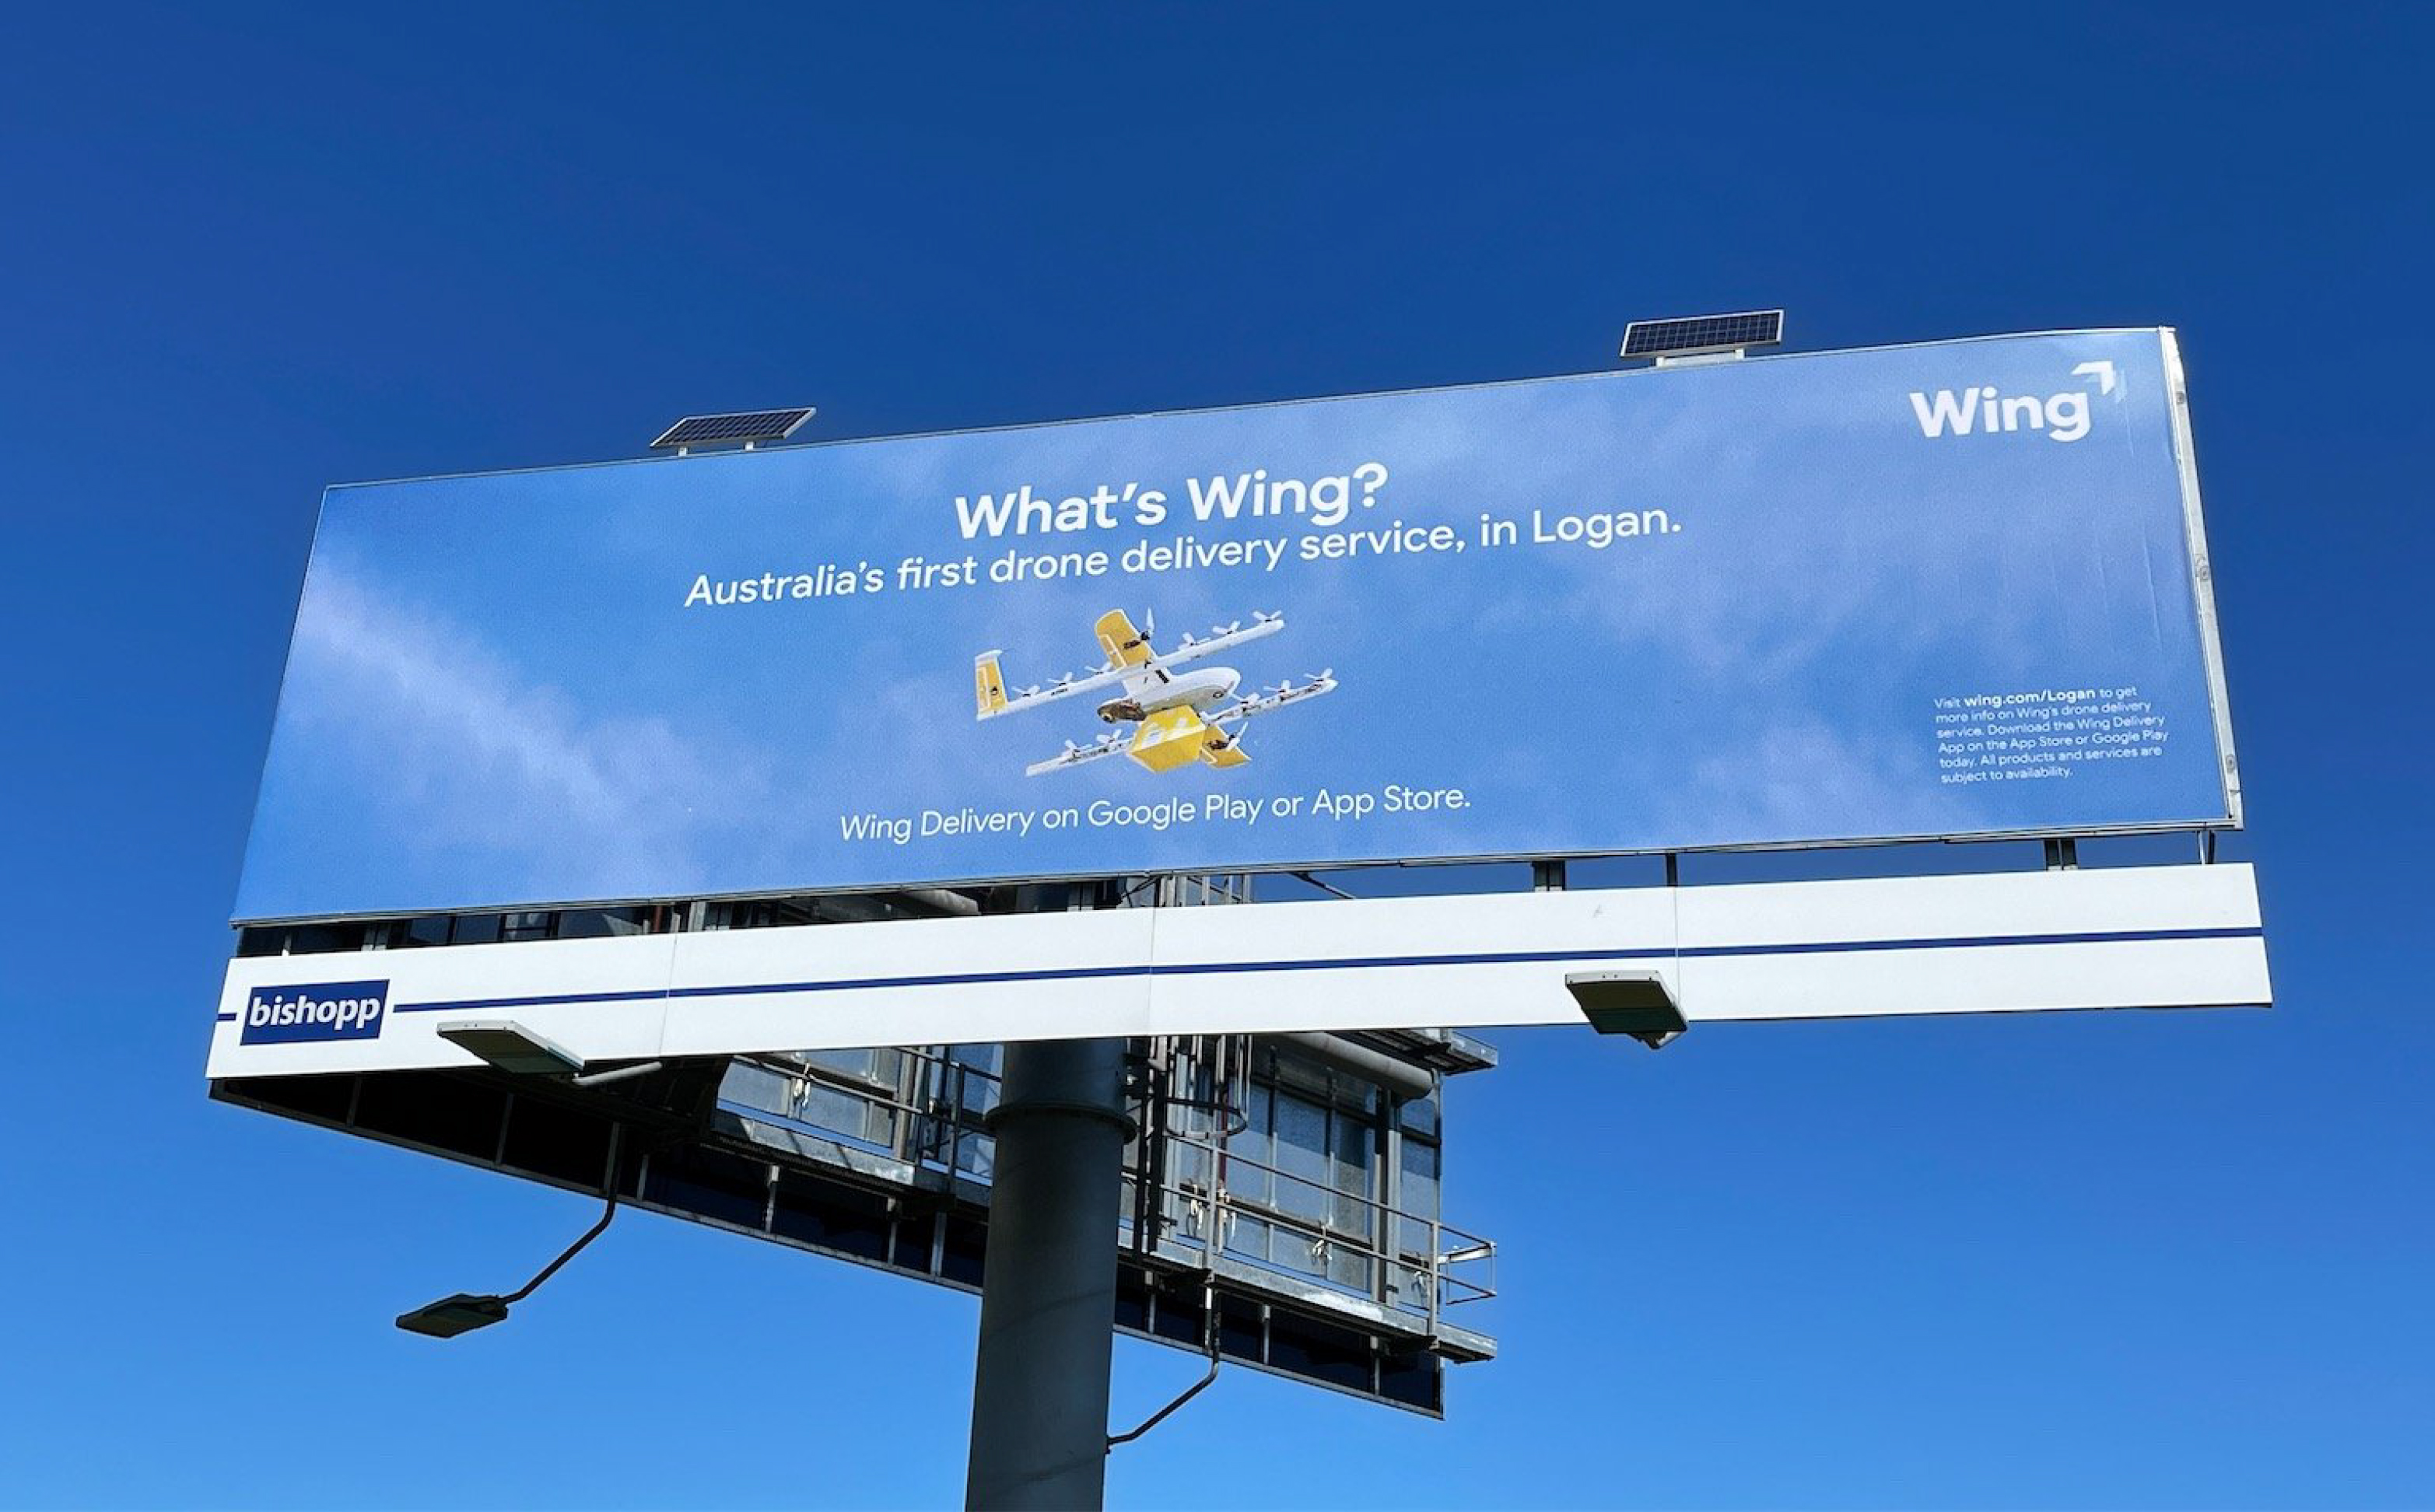 """Image of a billboard on-site in a clear blue sky. The billboard featuring photography of a Wing commercial drone. The billboard says """"What's Wing? Australia's first drone service, in Logan. Wing Delivery on Google Play or App Store."""""""